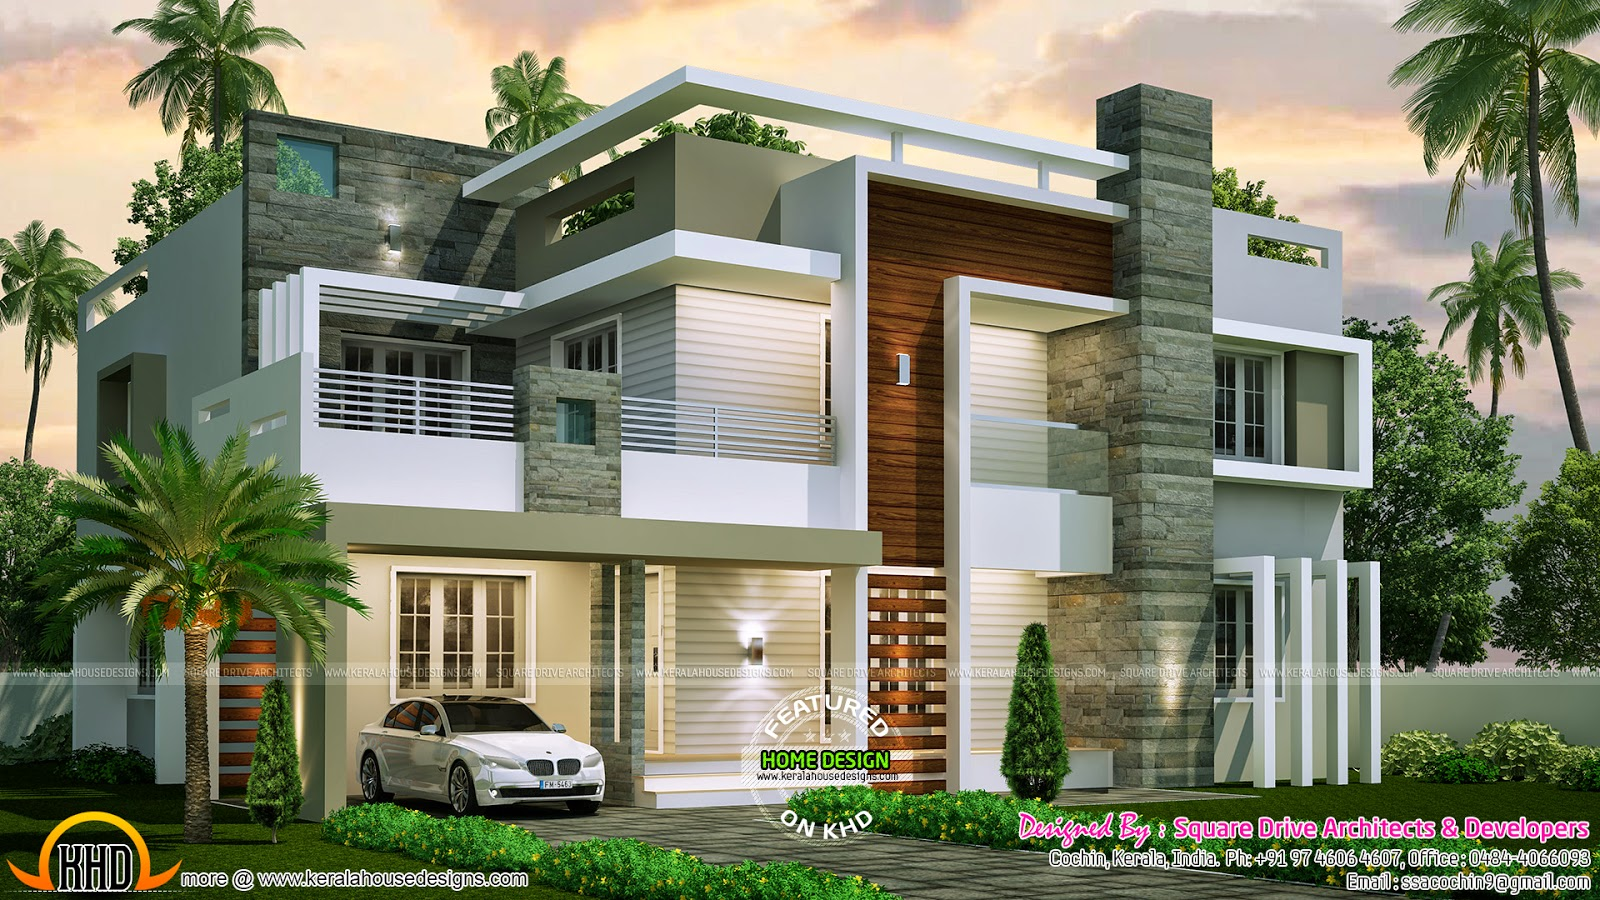 4 bedroom contemporary home design kerala home design for Modern house design 2018 philippines